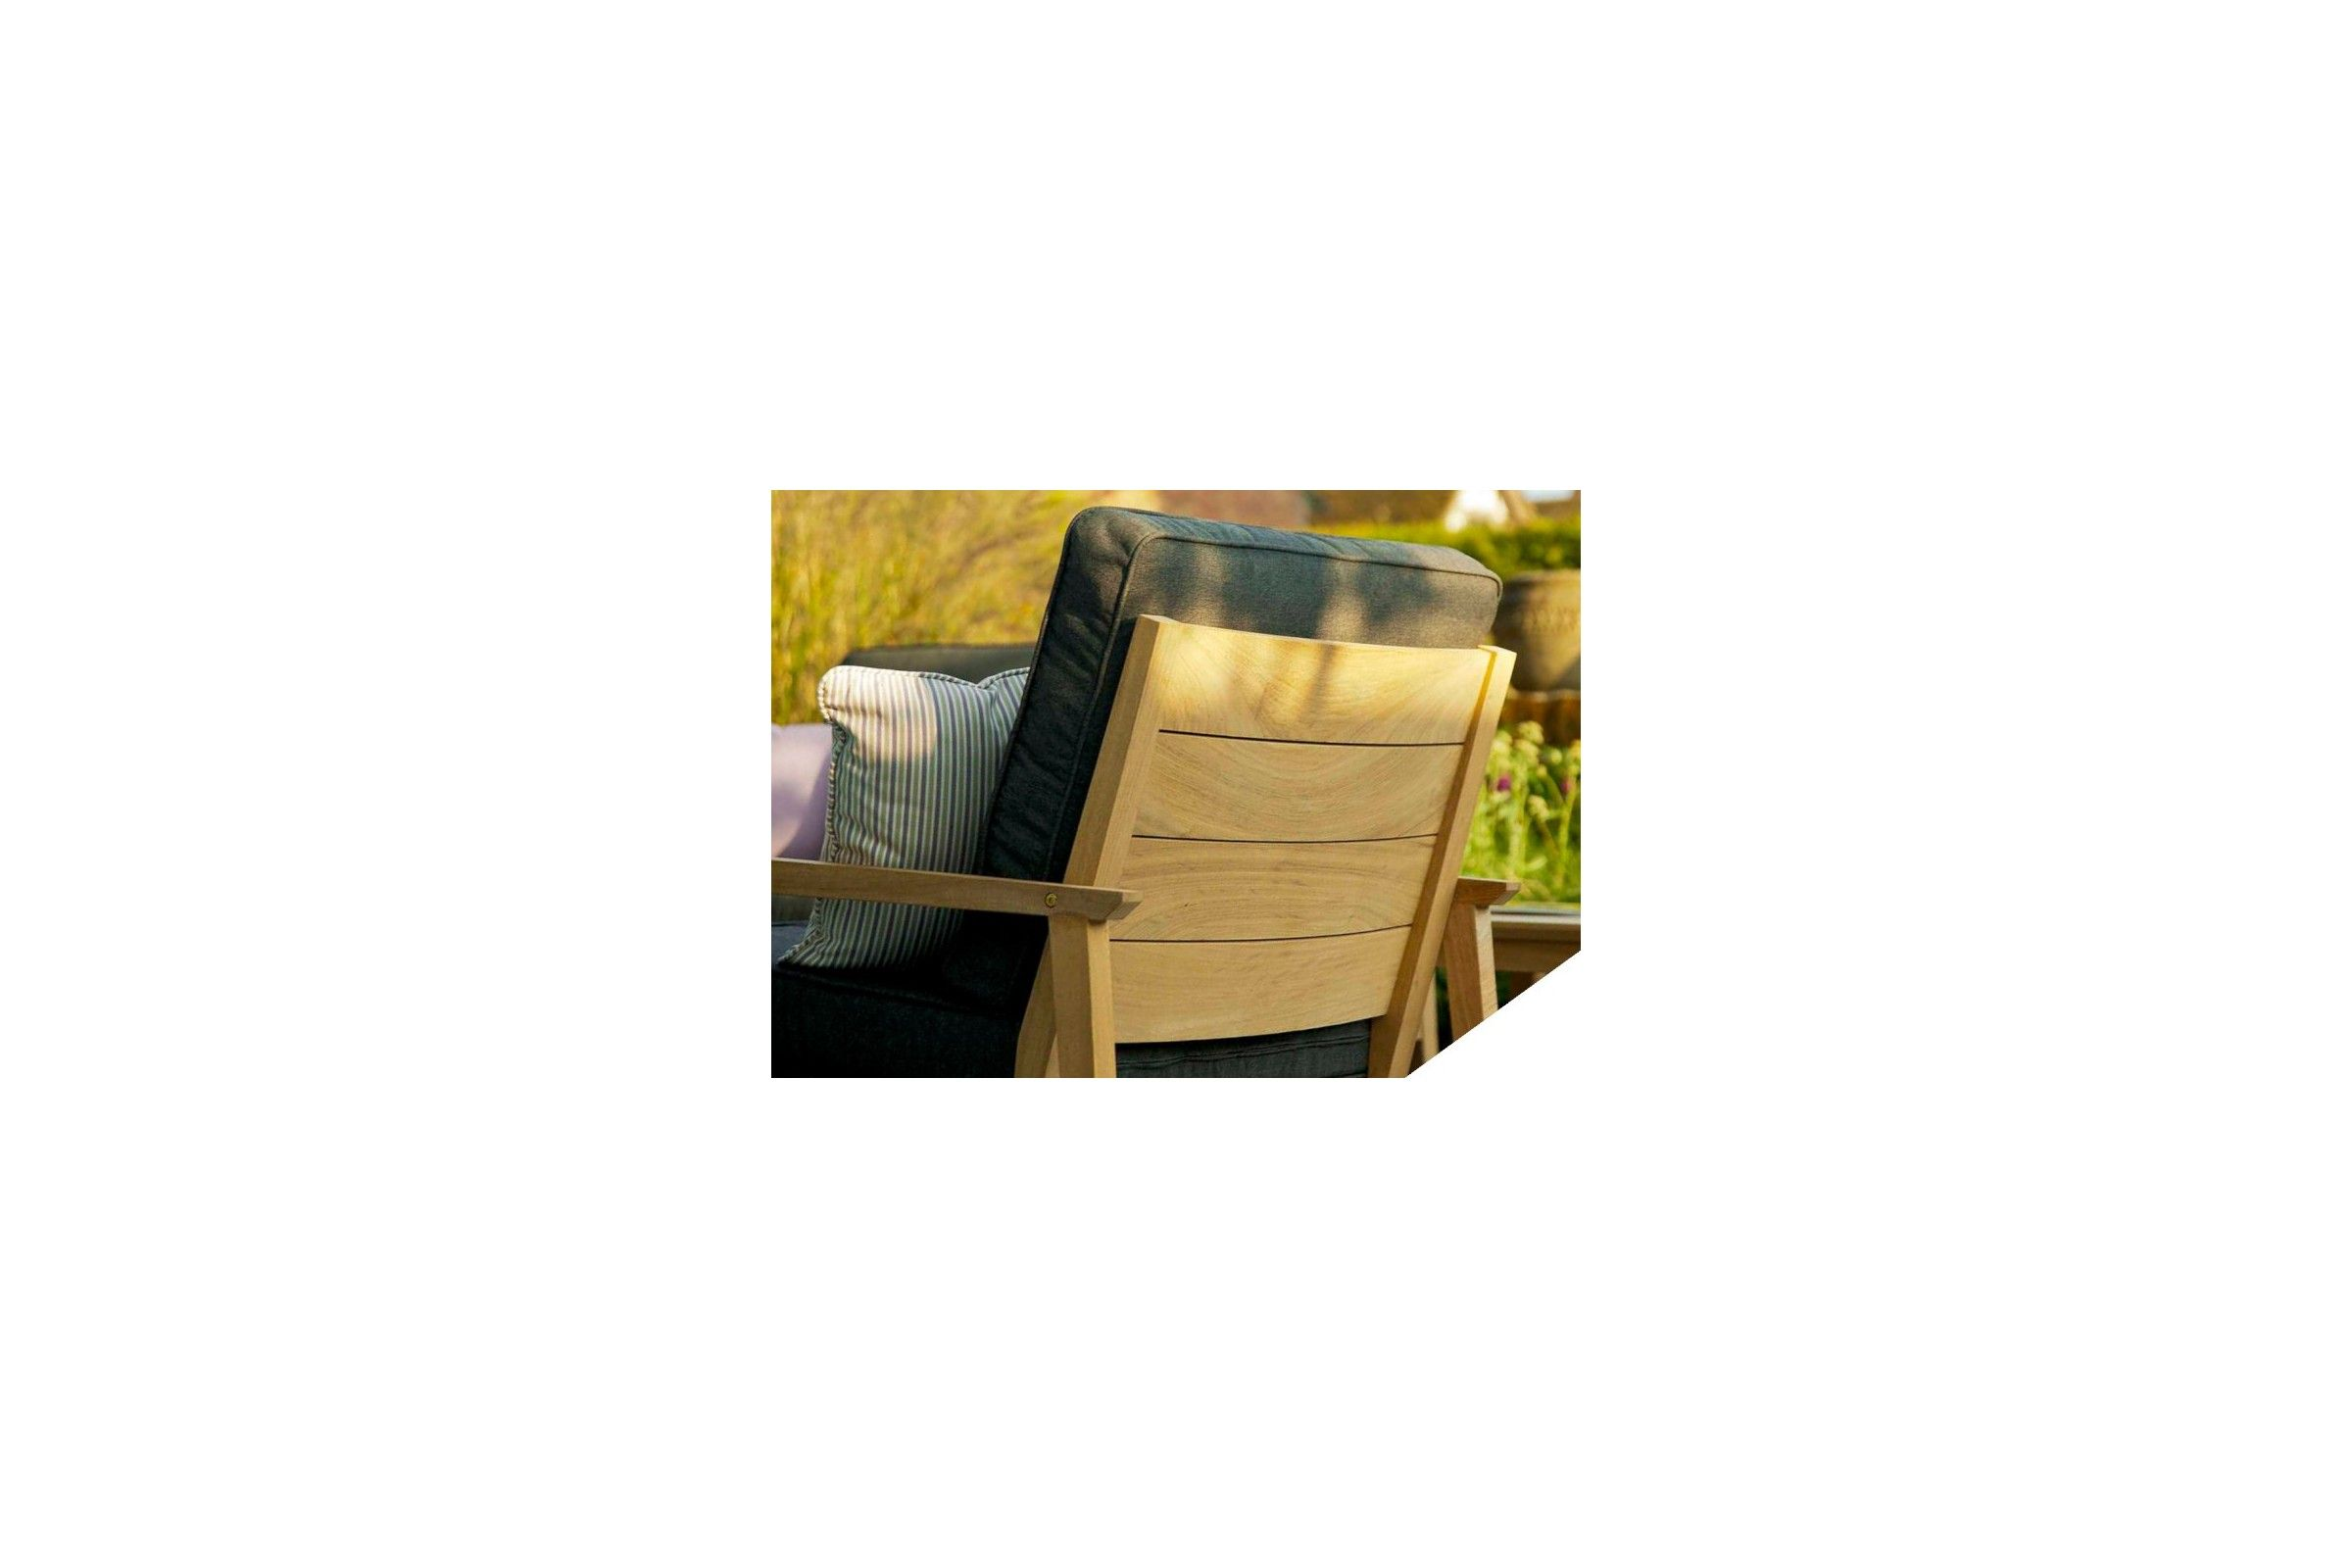 fauteuil de salon de jardin en bois avec coussin gris. Black Bedroom Furniture Sets. Home Design Ideas